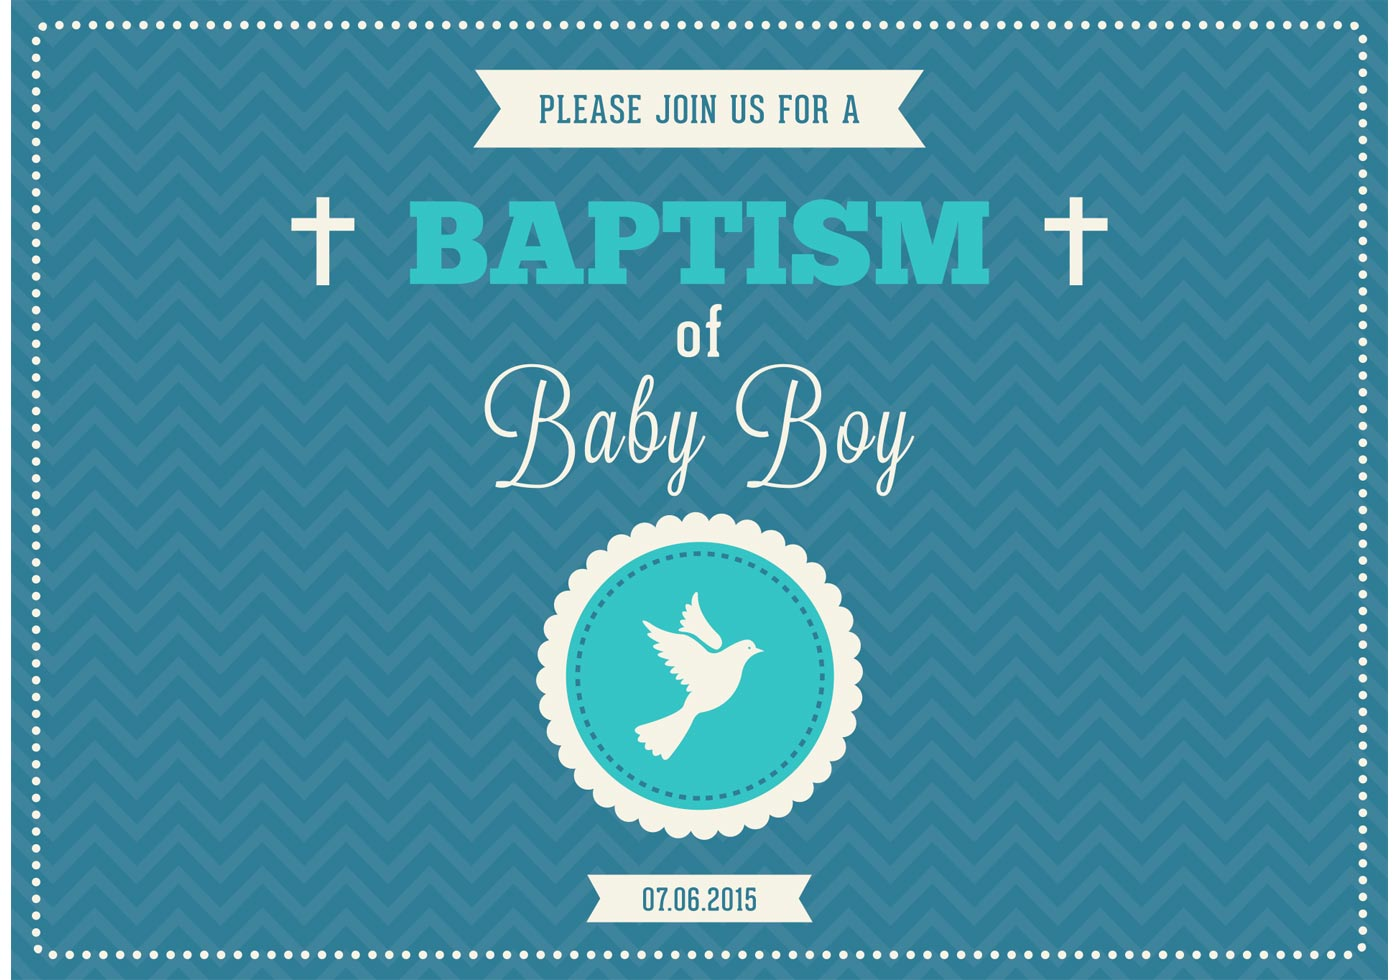 Free baby boy baptism vector invitation download free vector art free baby boy baptism vector invitation download free vector art stock graphics images stopboris Images